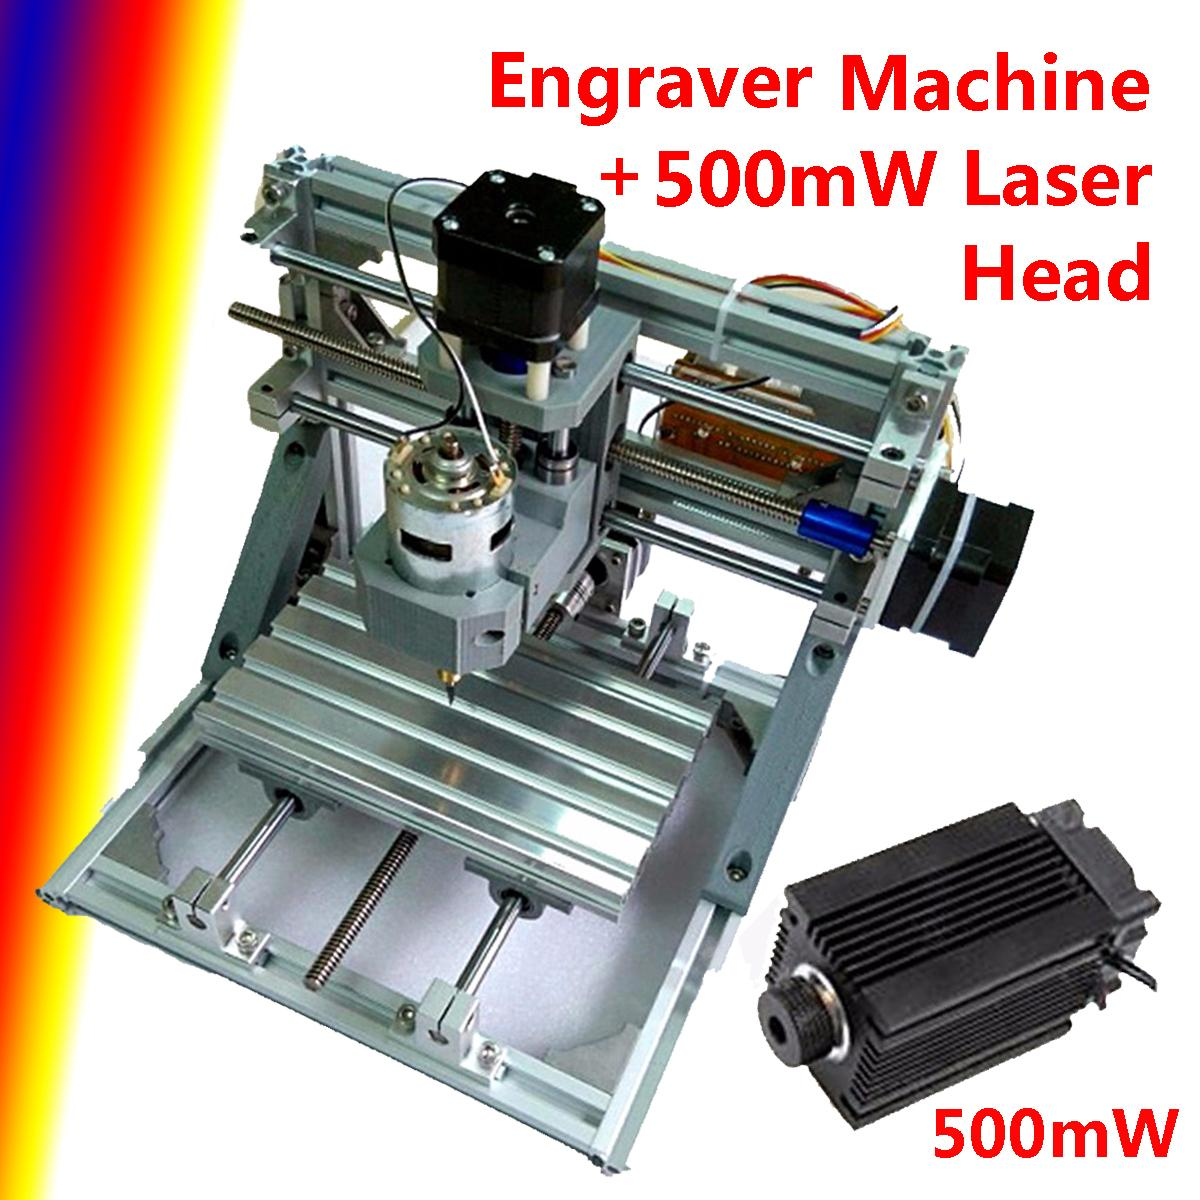 DIY CNC Engraving Machine 3 Axis Engraver Milling Wood Carving + 500MW Laser Head Working Area 160 X 105 X 30mm laser head owx8060 owy8075 onp8170